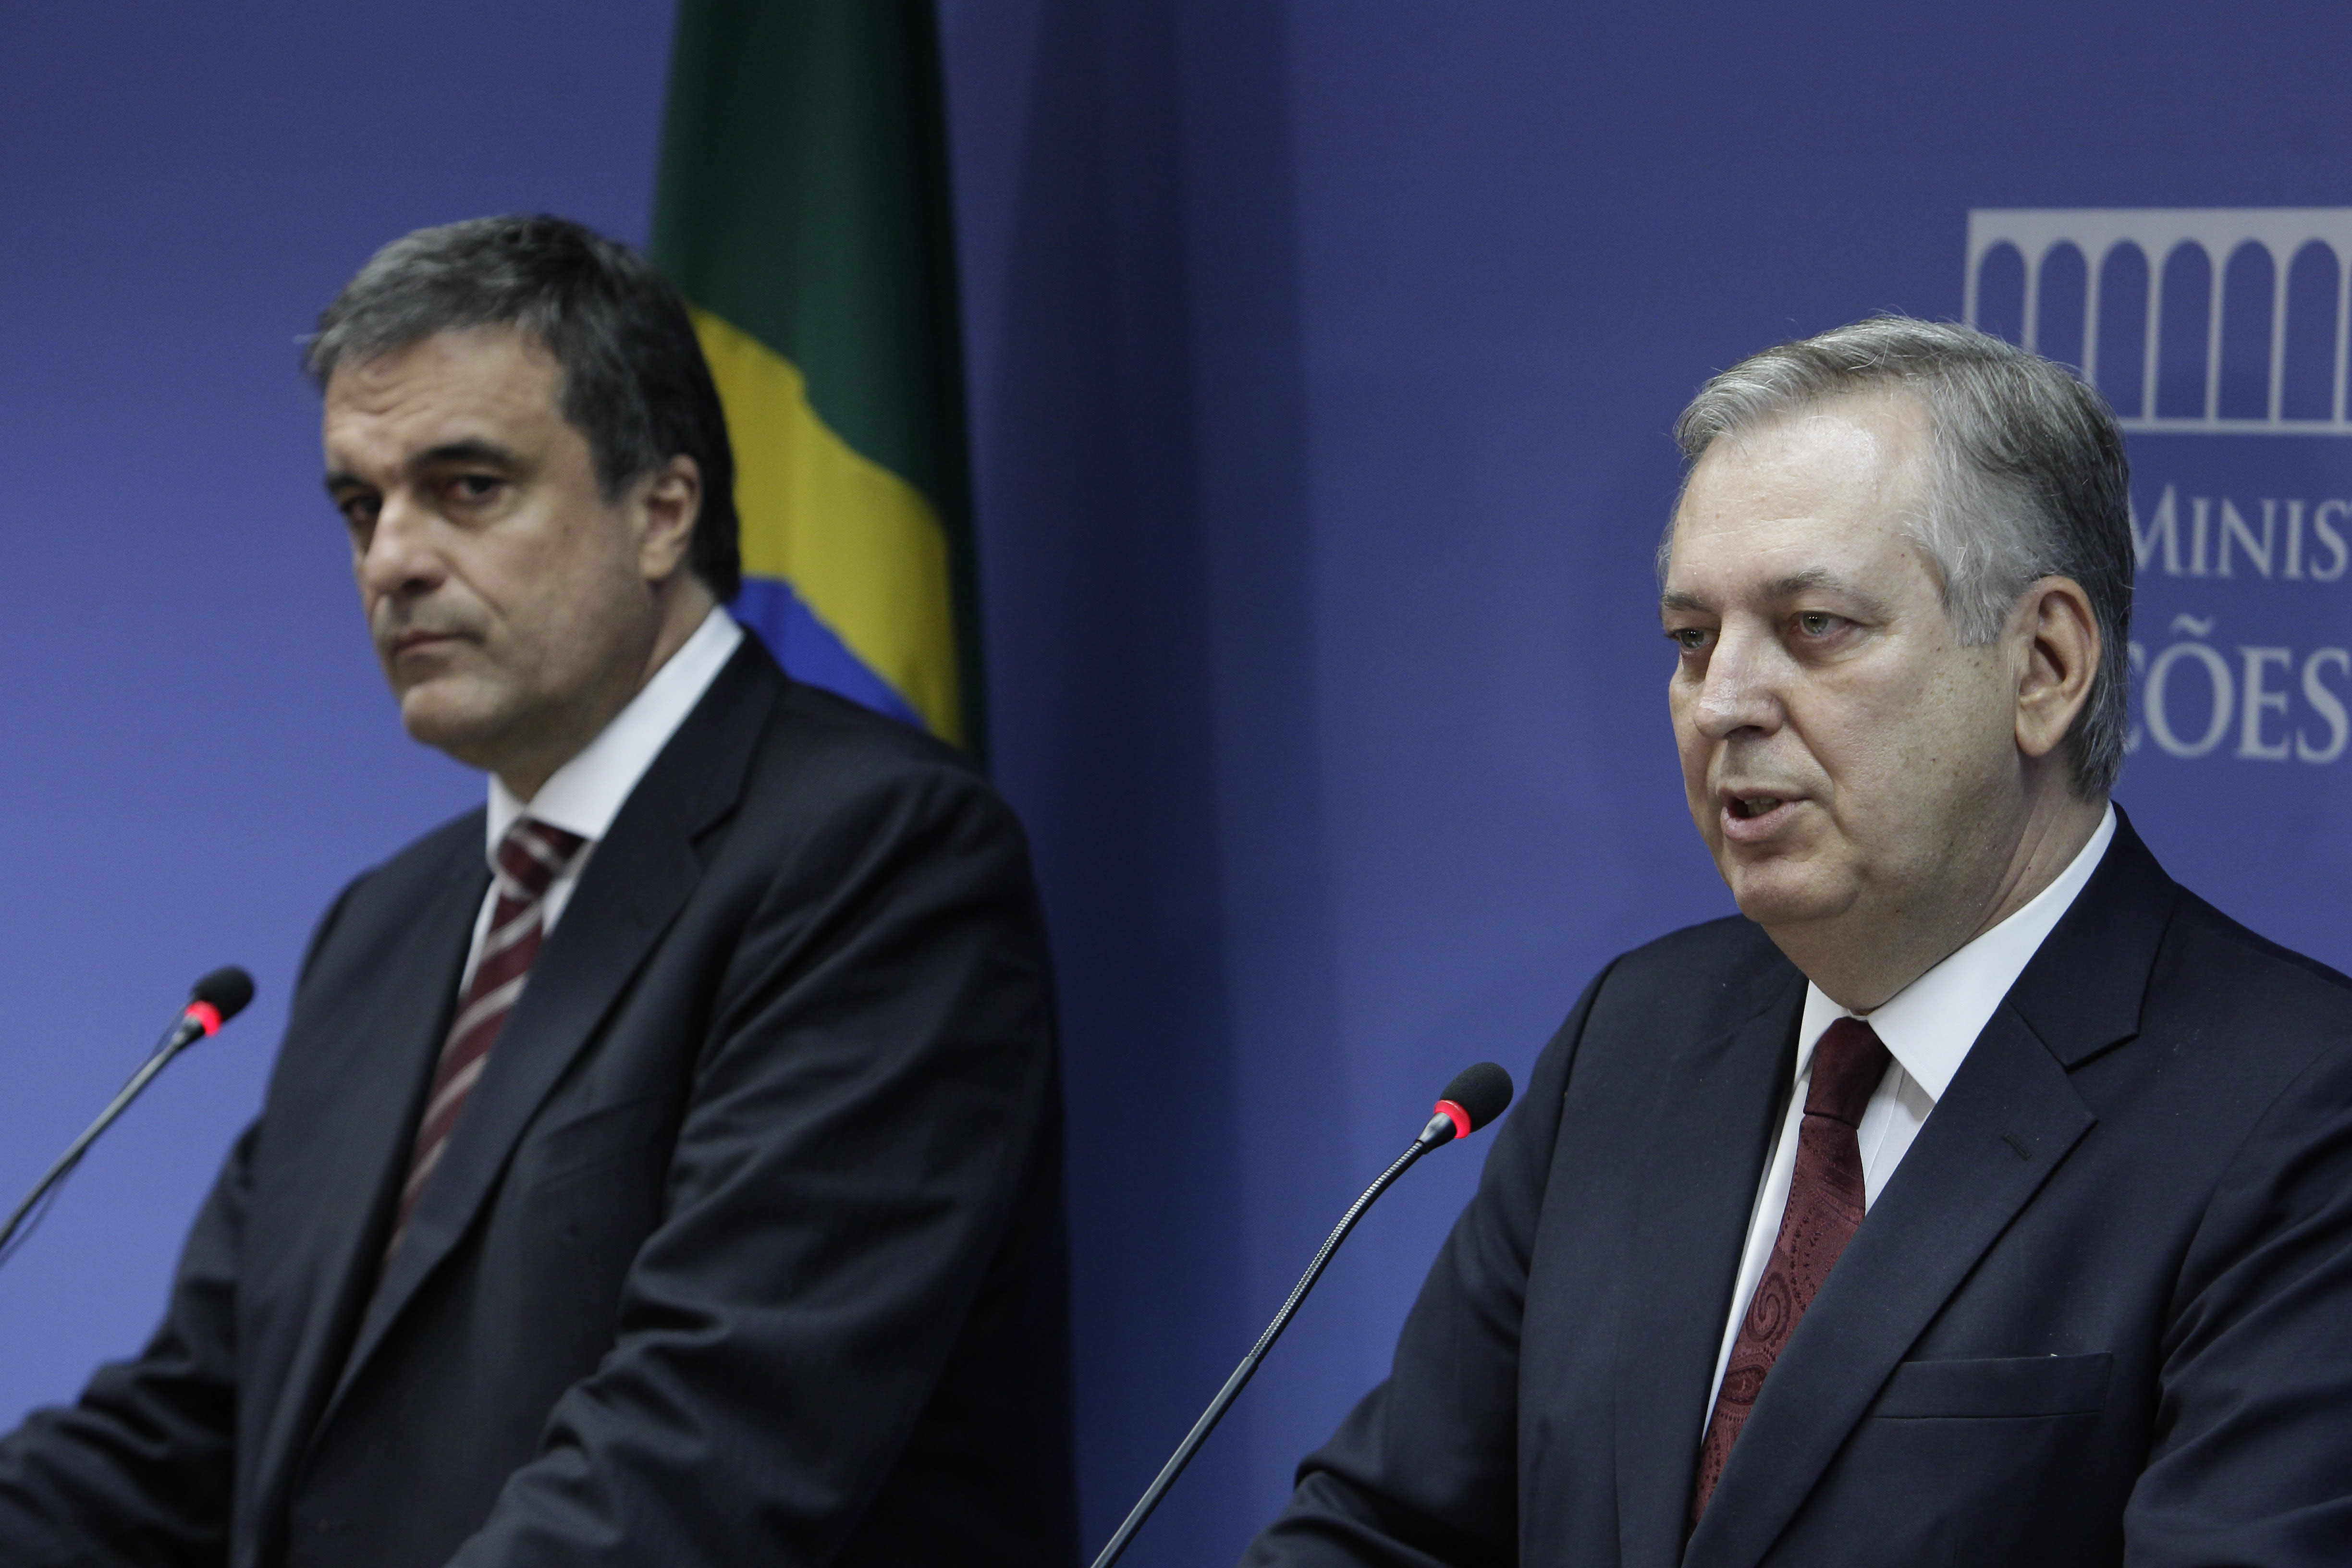 Brazil's Foreign Minister Luiz Alberto Figueiredo Machado, right, speaks alongside Brazil's Justice Minister Jose Eduardo Cardoso during a news conference at Itamaraty palace in Brasilia, Brazil, Monday, Sept. 2, 2013. The Brazilian government called in the U.S. ambassador Monday to provide explanations about new revelations that the National Security Agency's spy program directly targeted the South American giant's leader, President Dilma Rousseff . (AP Photo/Eraldo Peres)